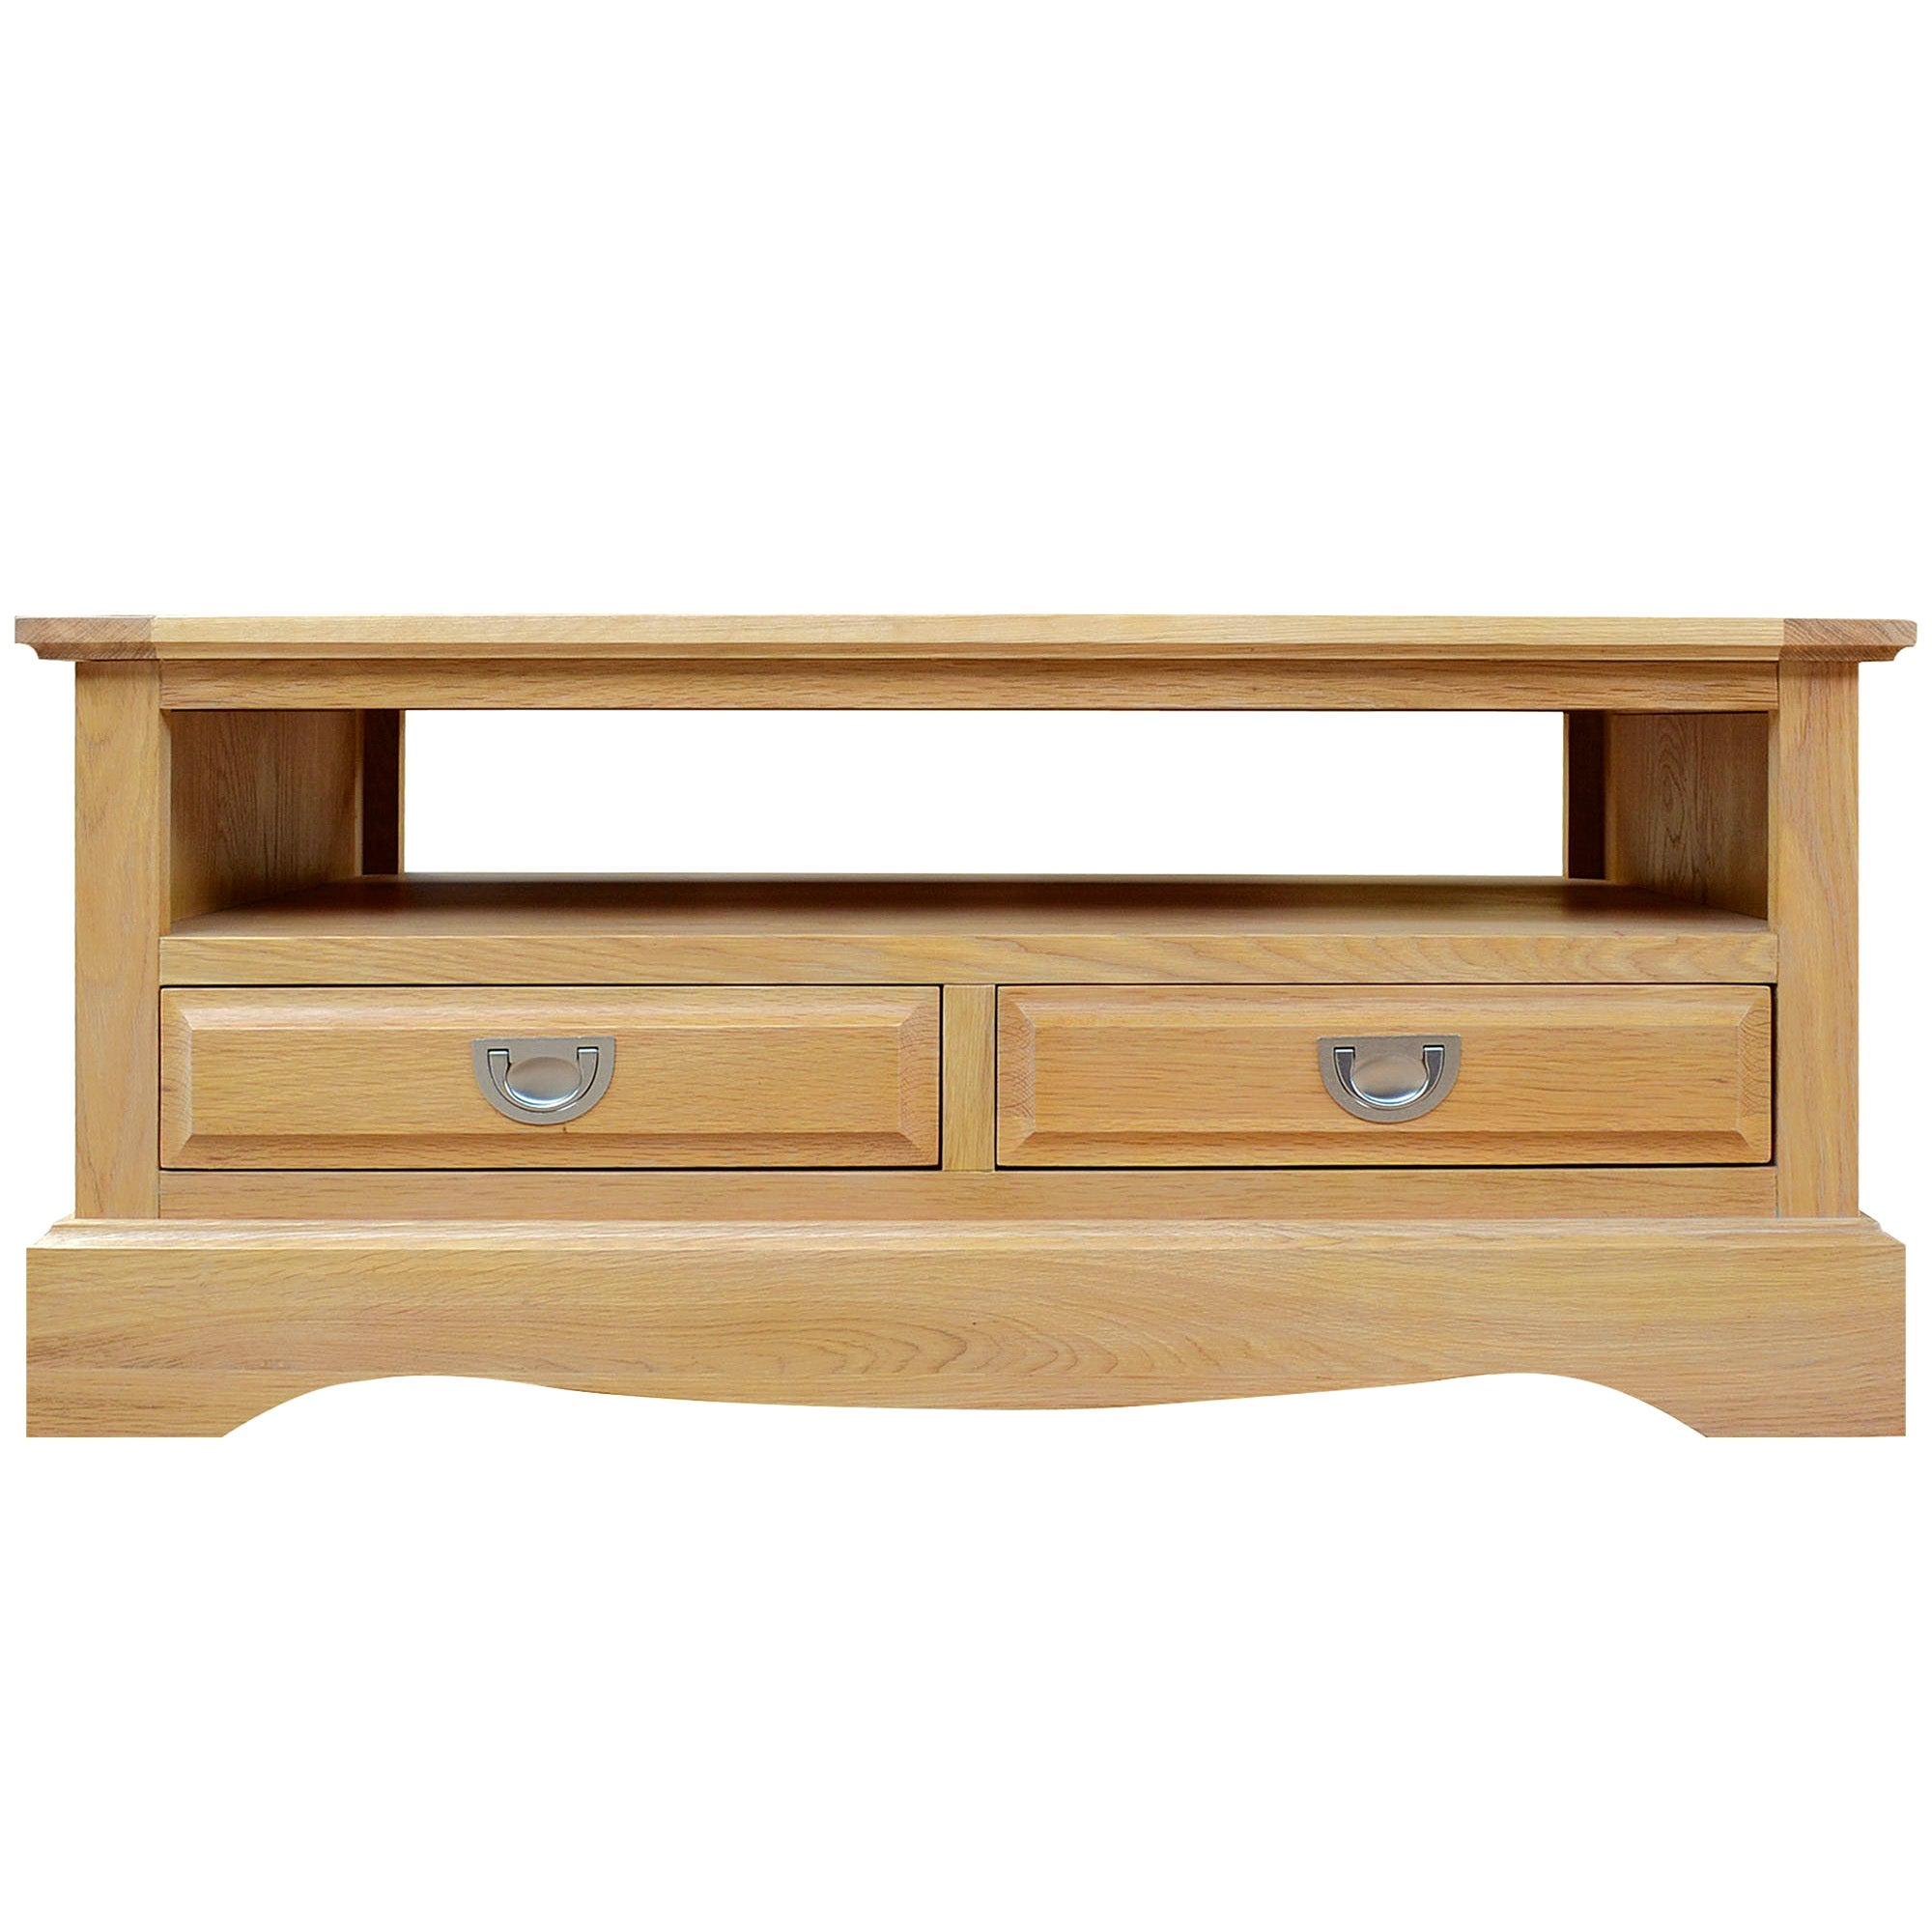 Oak Trunk Coffee Table Shop For Cheap Tables And Save Online